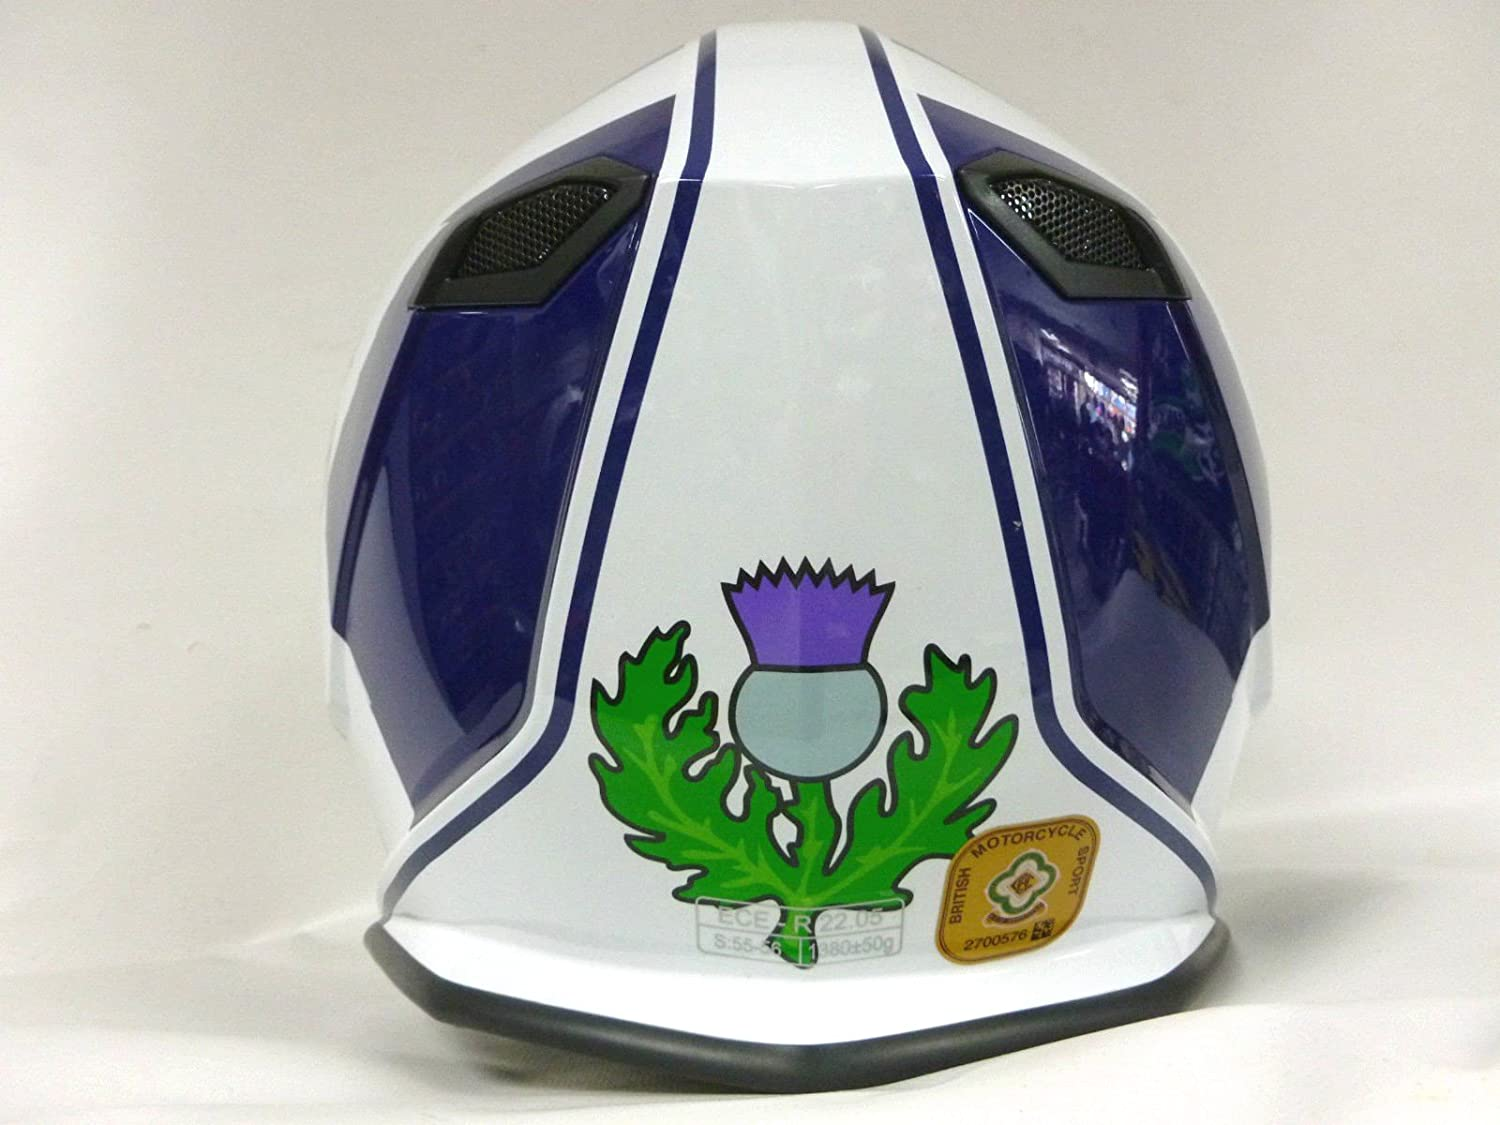 MOTORBIKE VCAN V127 SCOTLAND FLAG HELMET Motorcycle Full Face Graphic ECE ACU Gold Approved Sports Touring Scotish Helmet /& Grid Balaclava